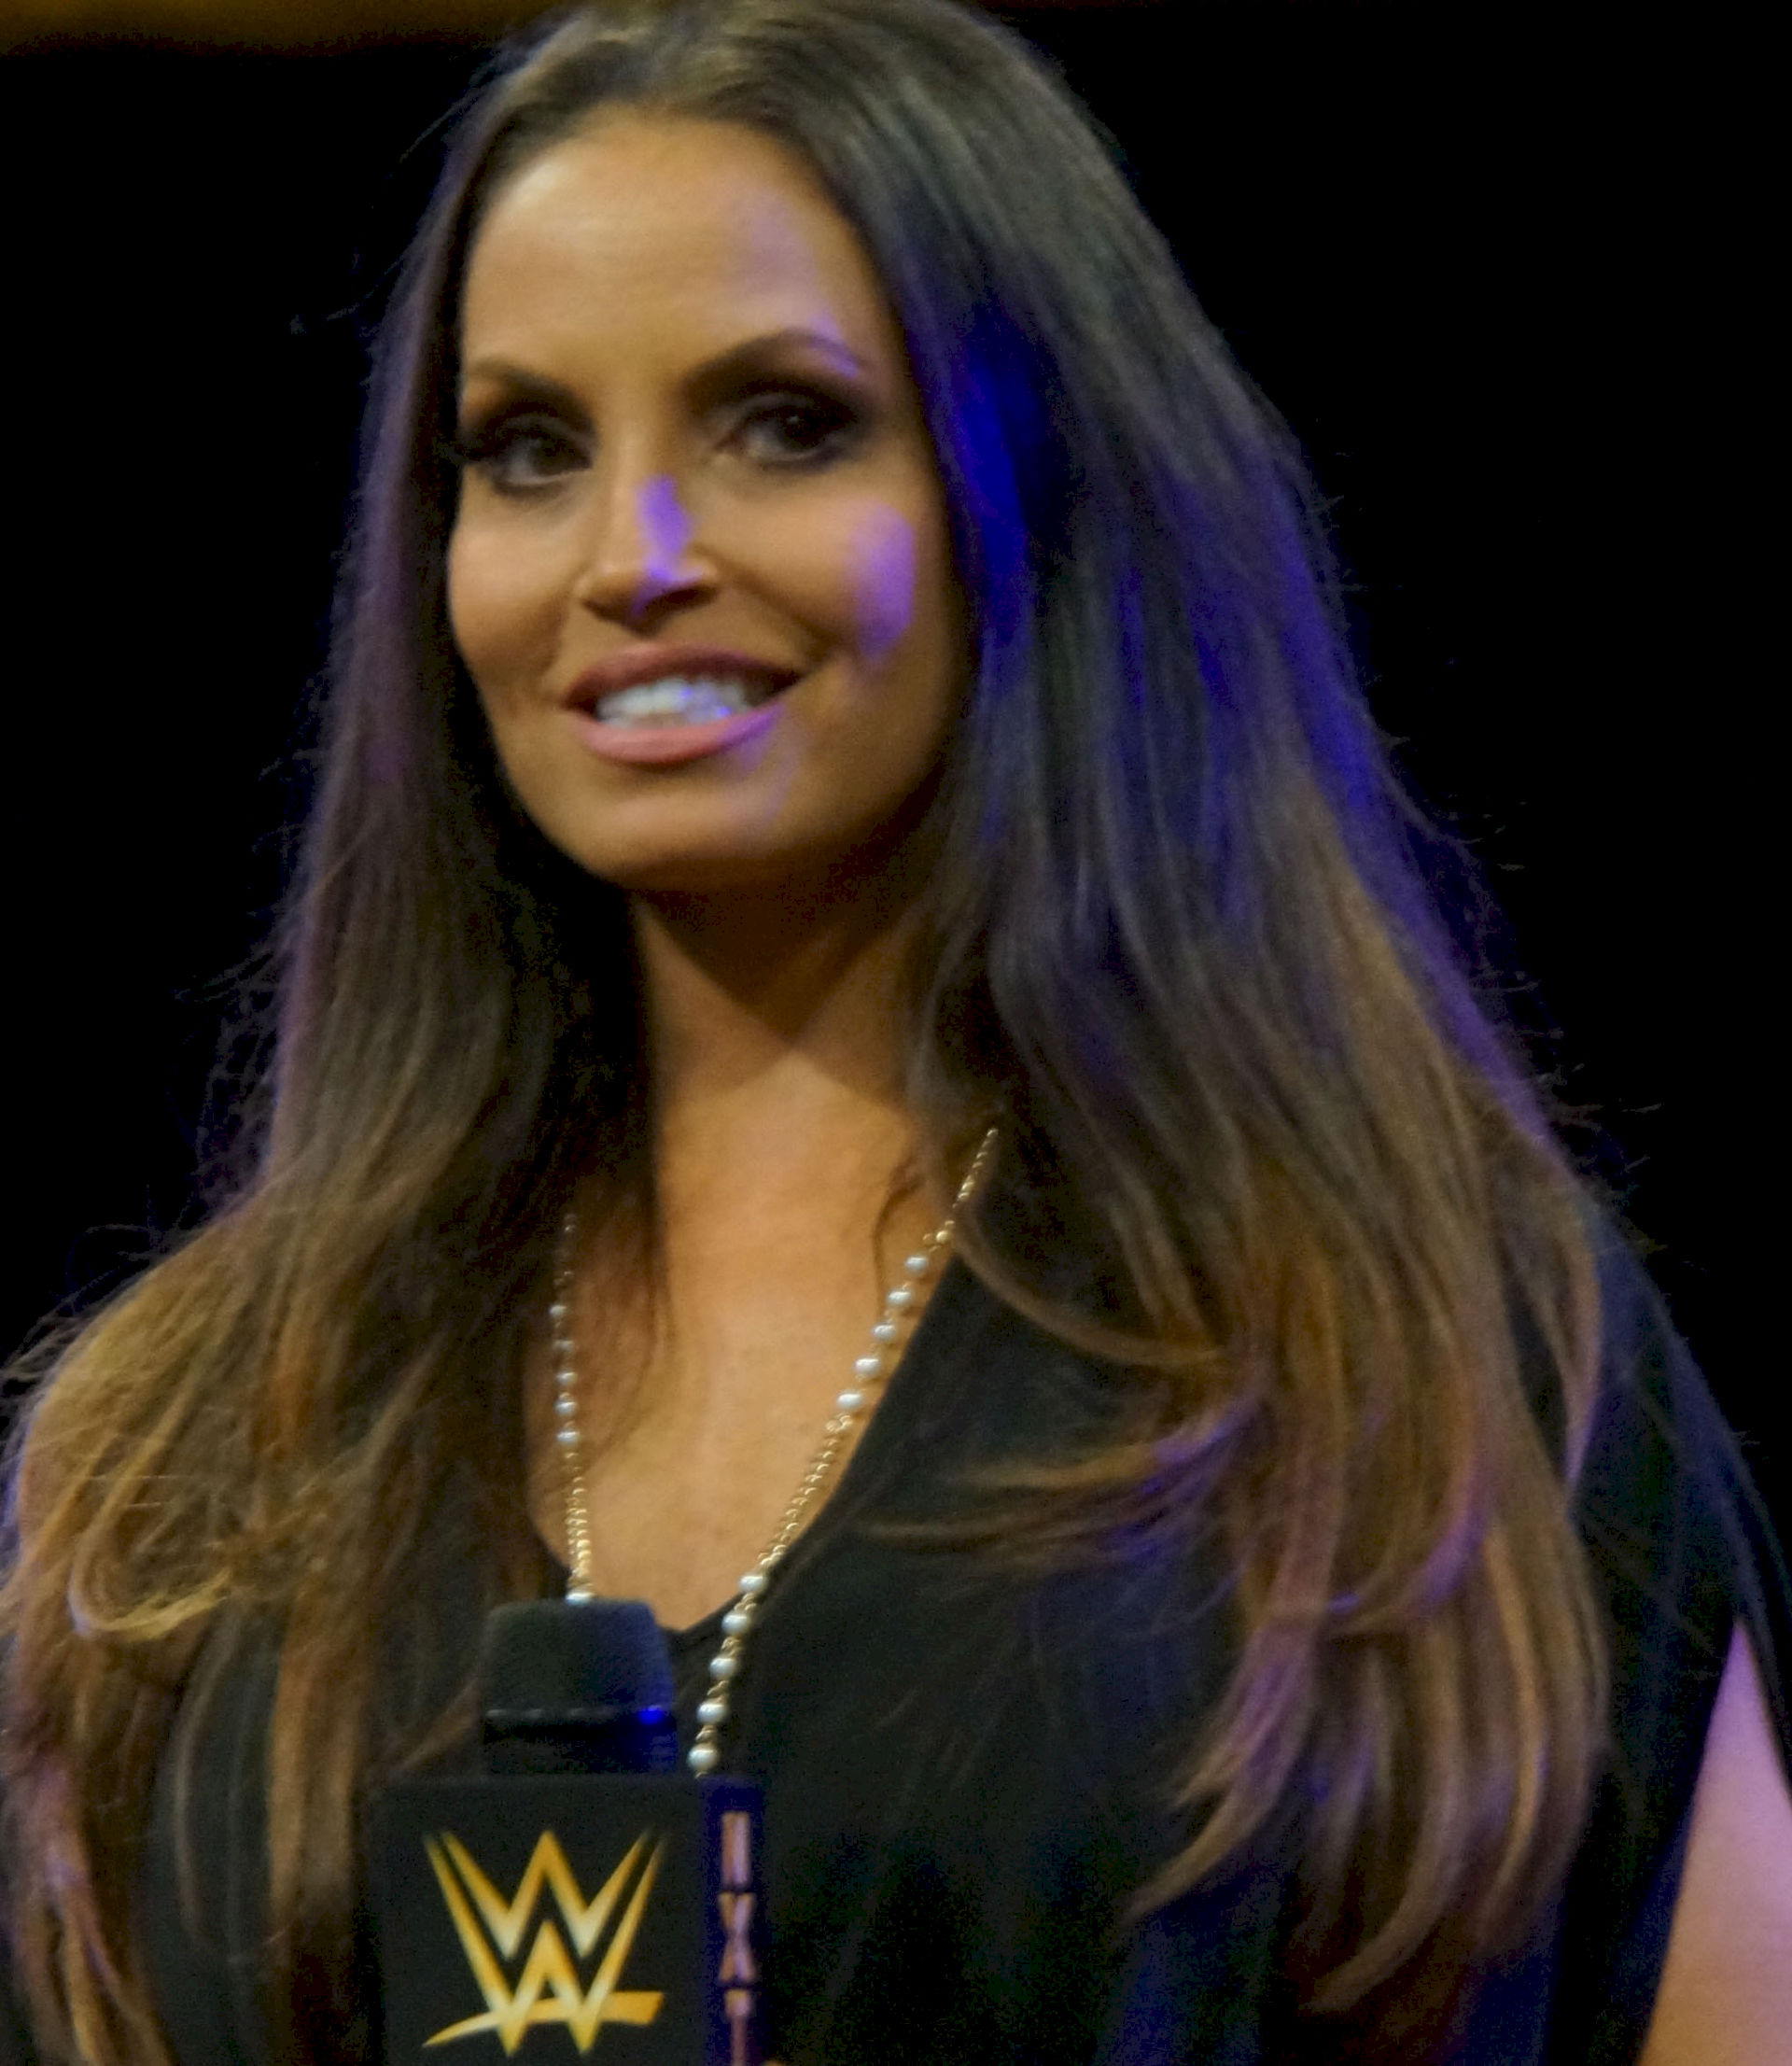 Photo of Trish Stratus: Canadian professional wrestler, fitness guru, actress, television personality, and fitness model